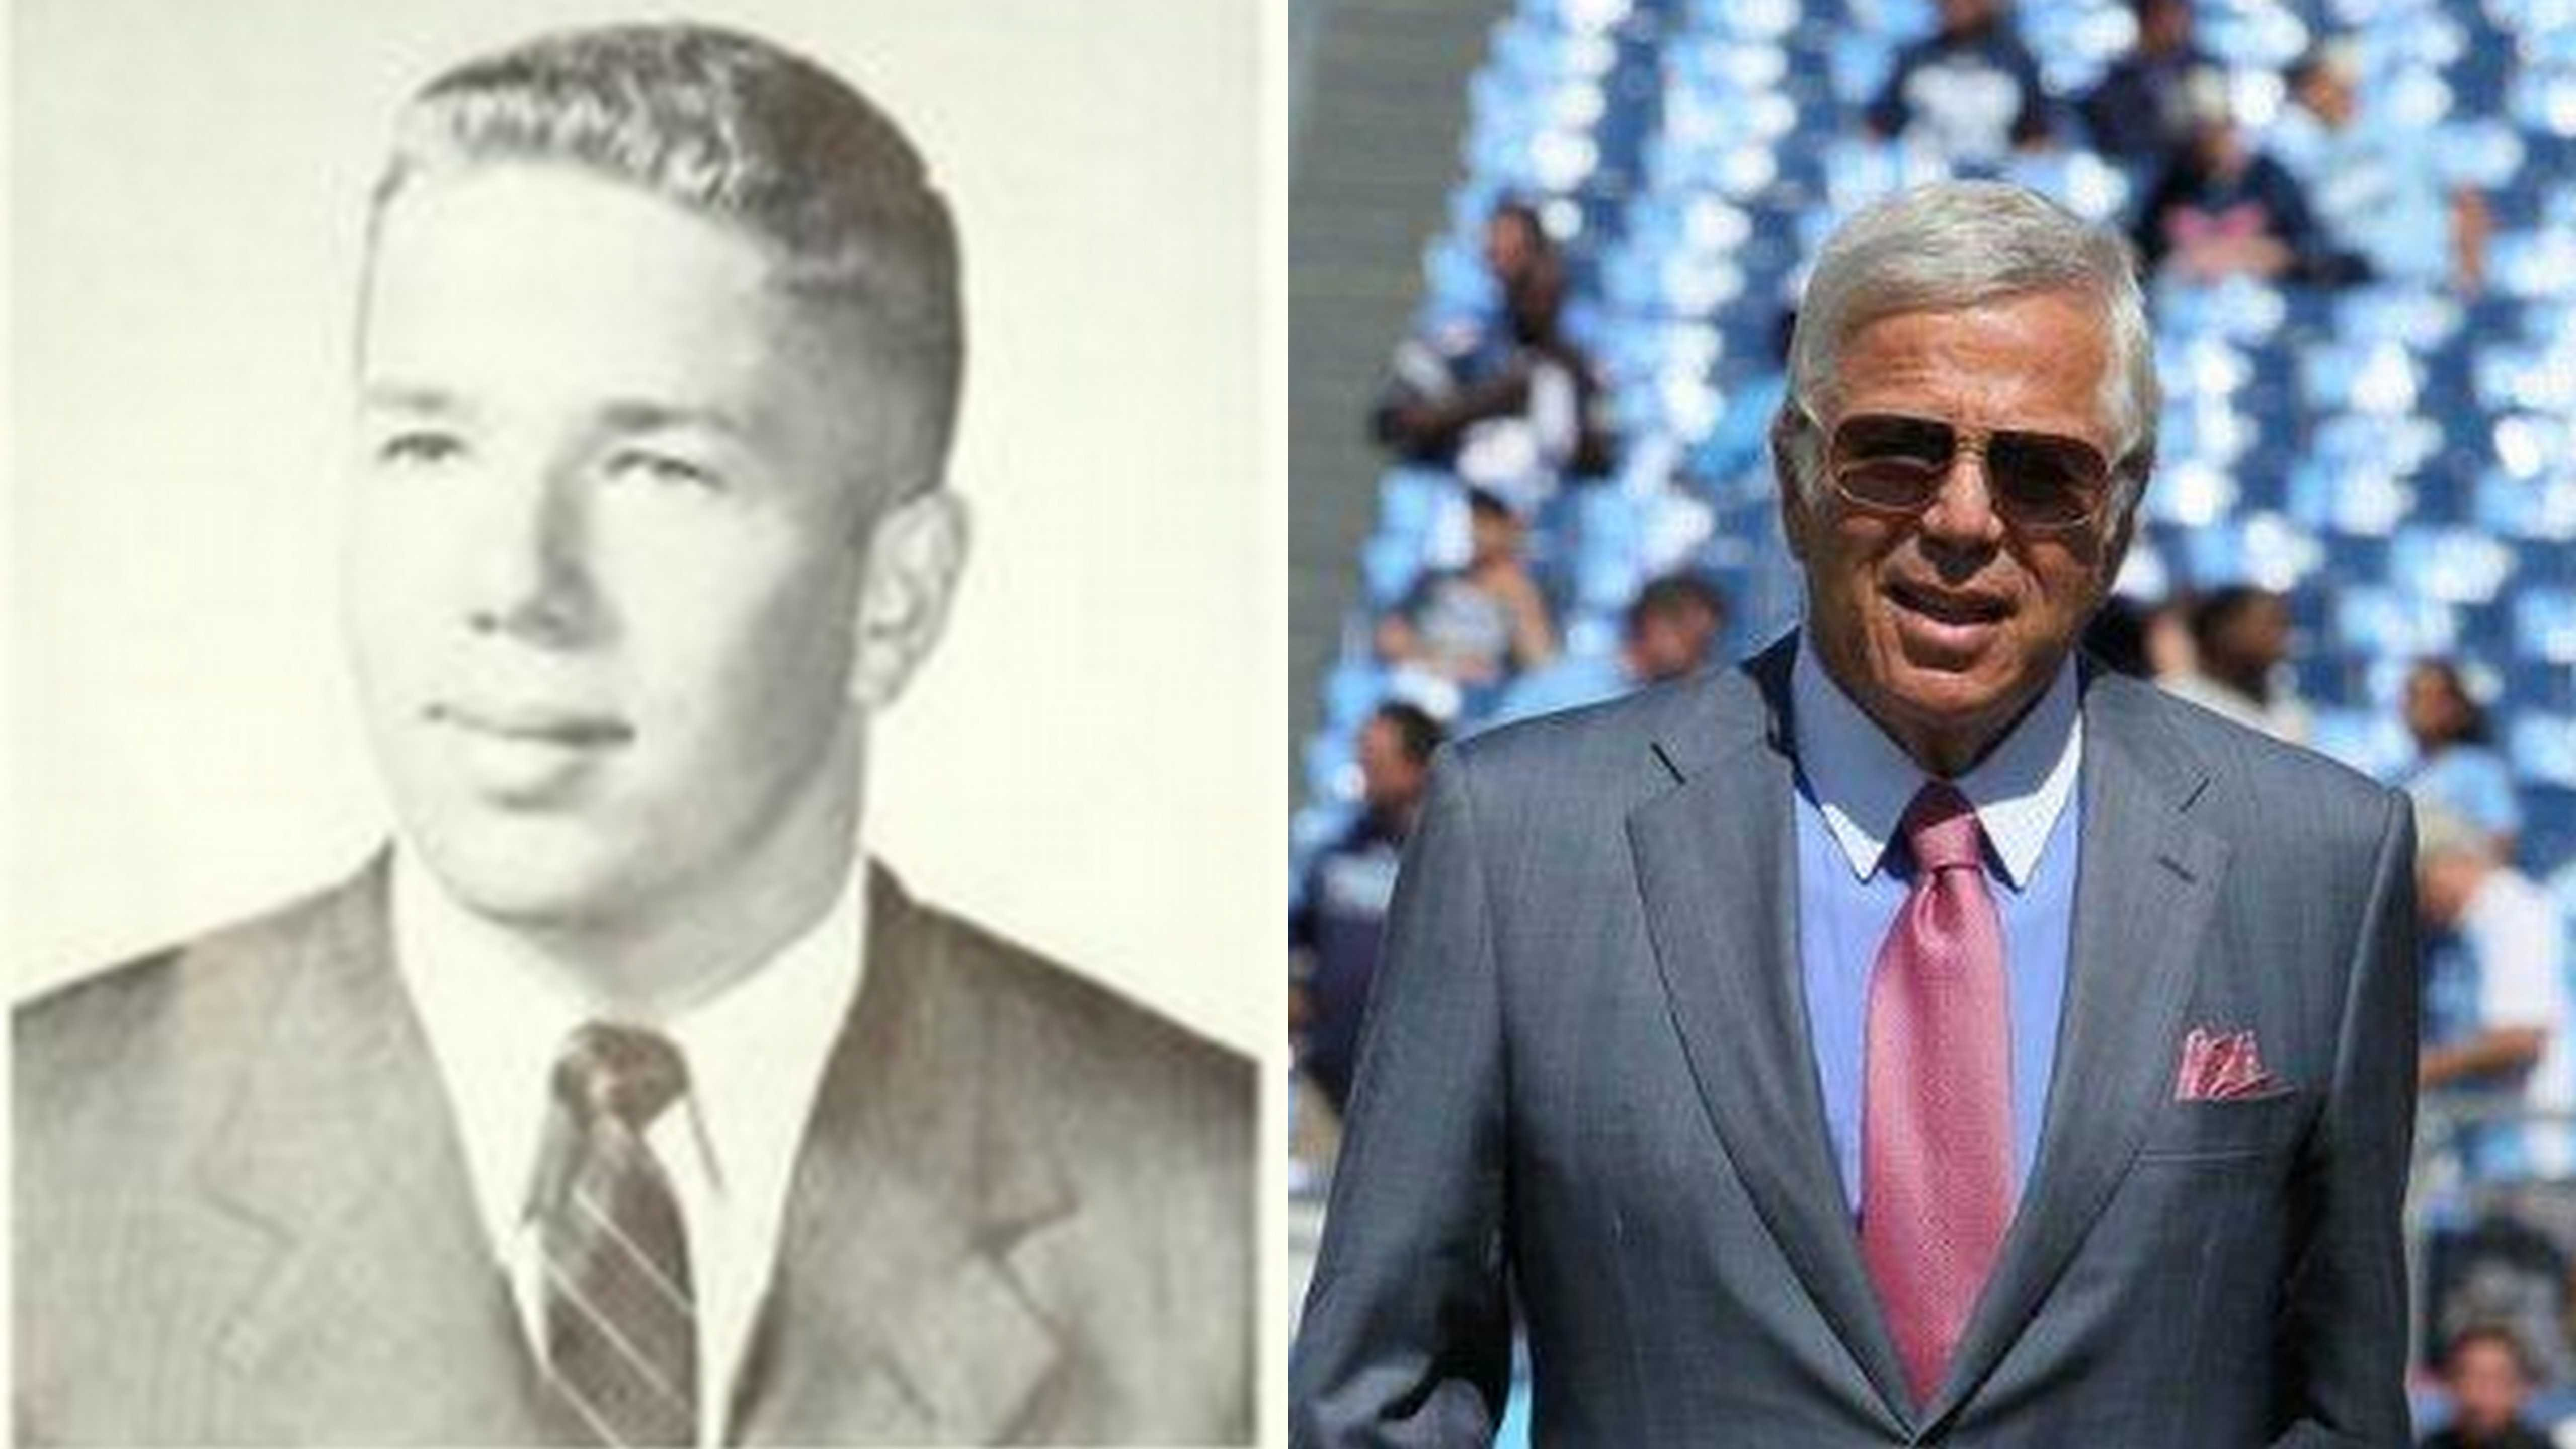 Robert Kraft '59 then and now. Photos from Murivian '59 (left) and provided by Jane Hoffmeister (right).